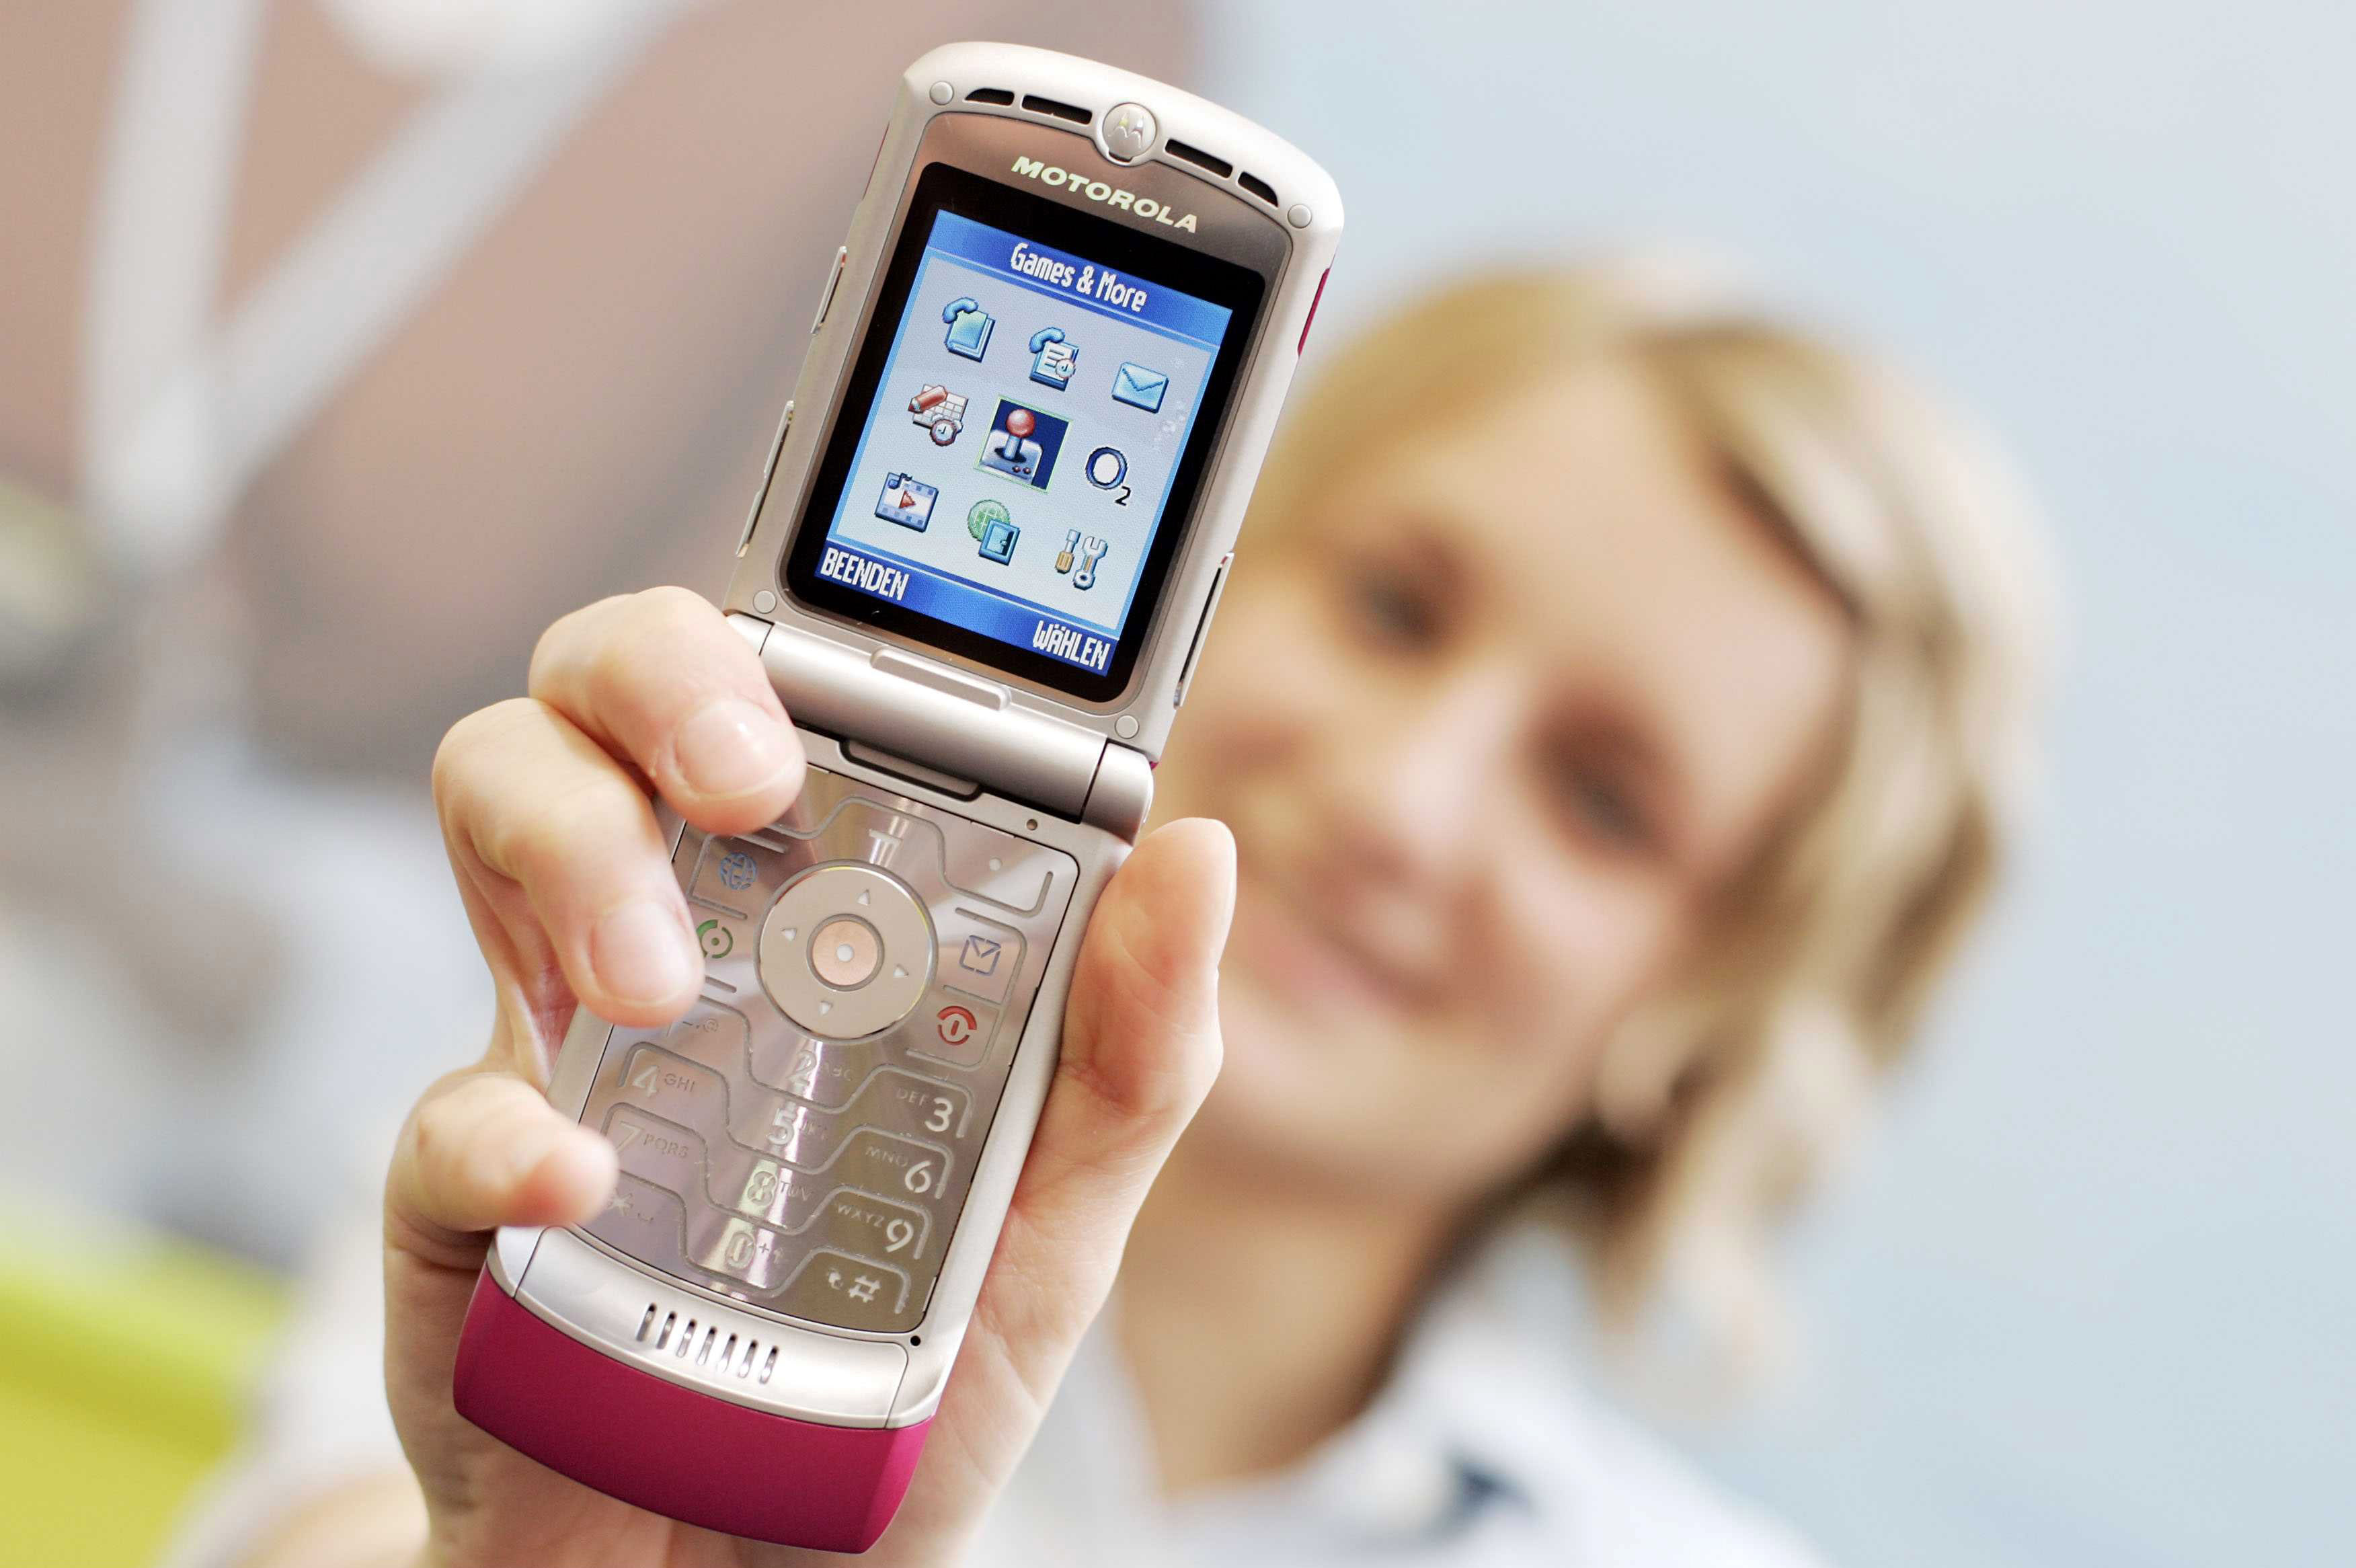 The Motorola Razr is making a comeback and we can't wait